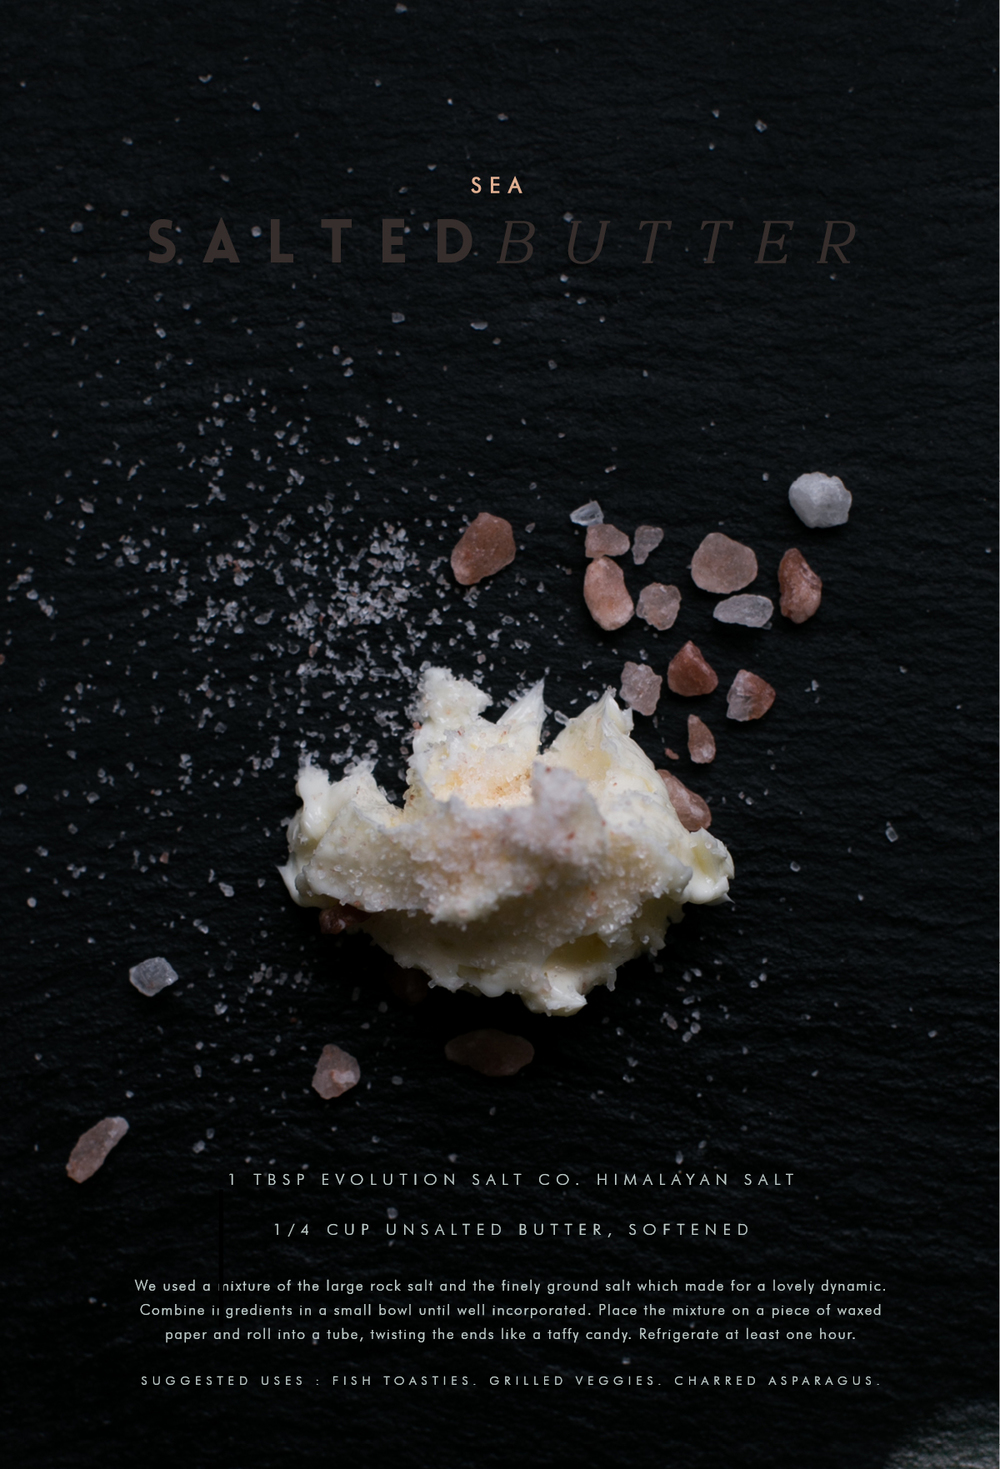 Sea Salt Butter